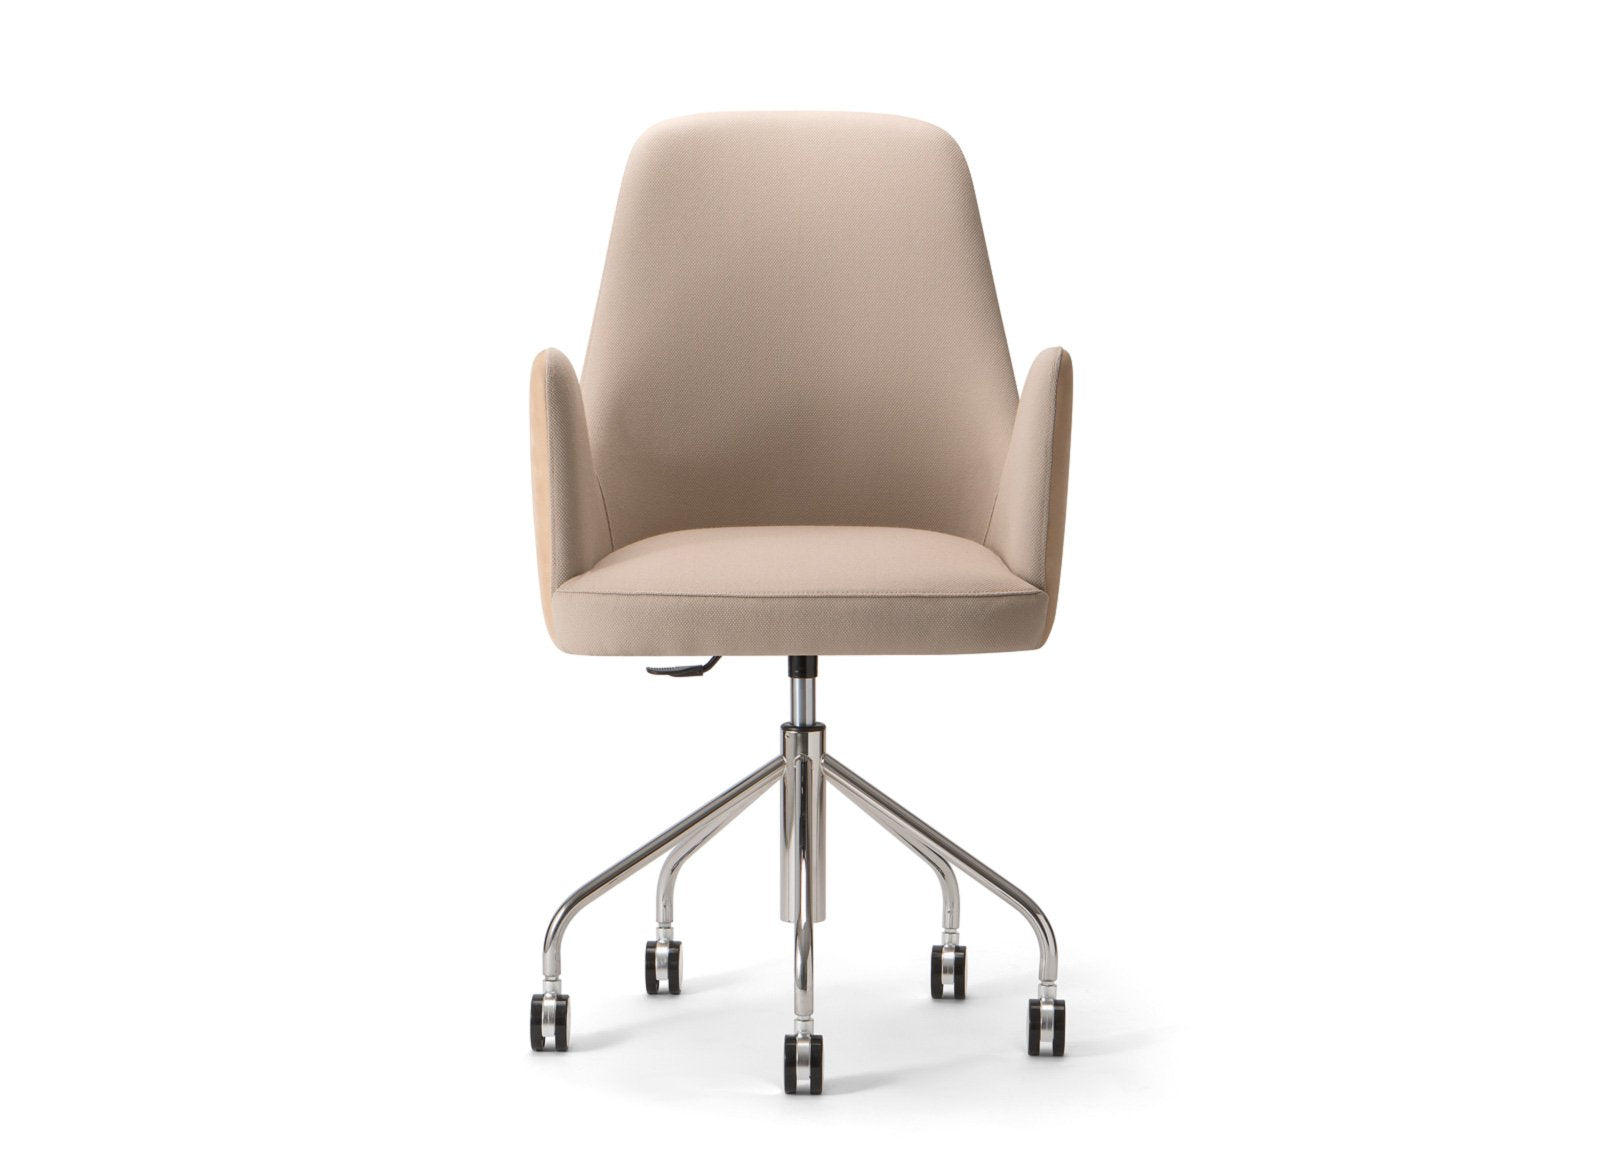 Adima 04 Armchair c/w Wheels 2-Torre-Contract Furniture Store